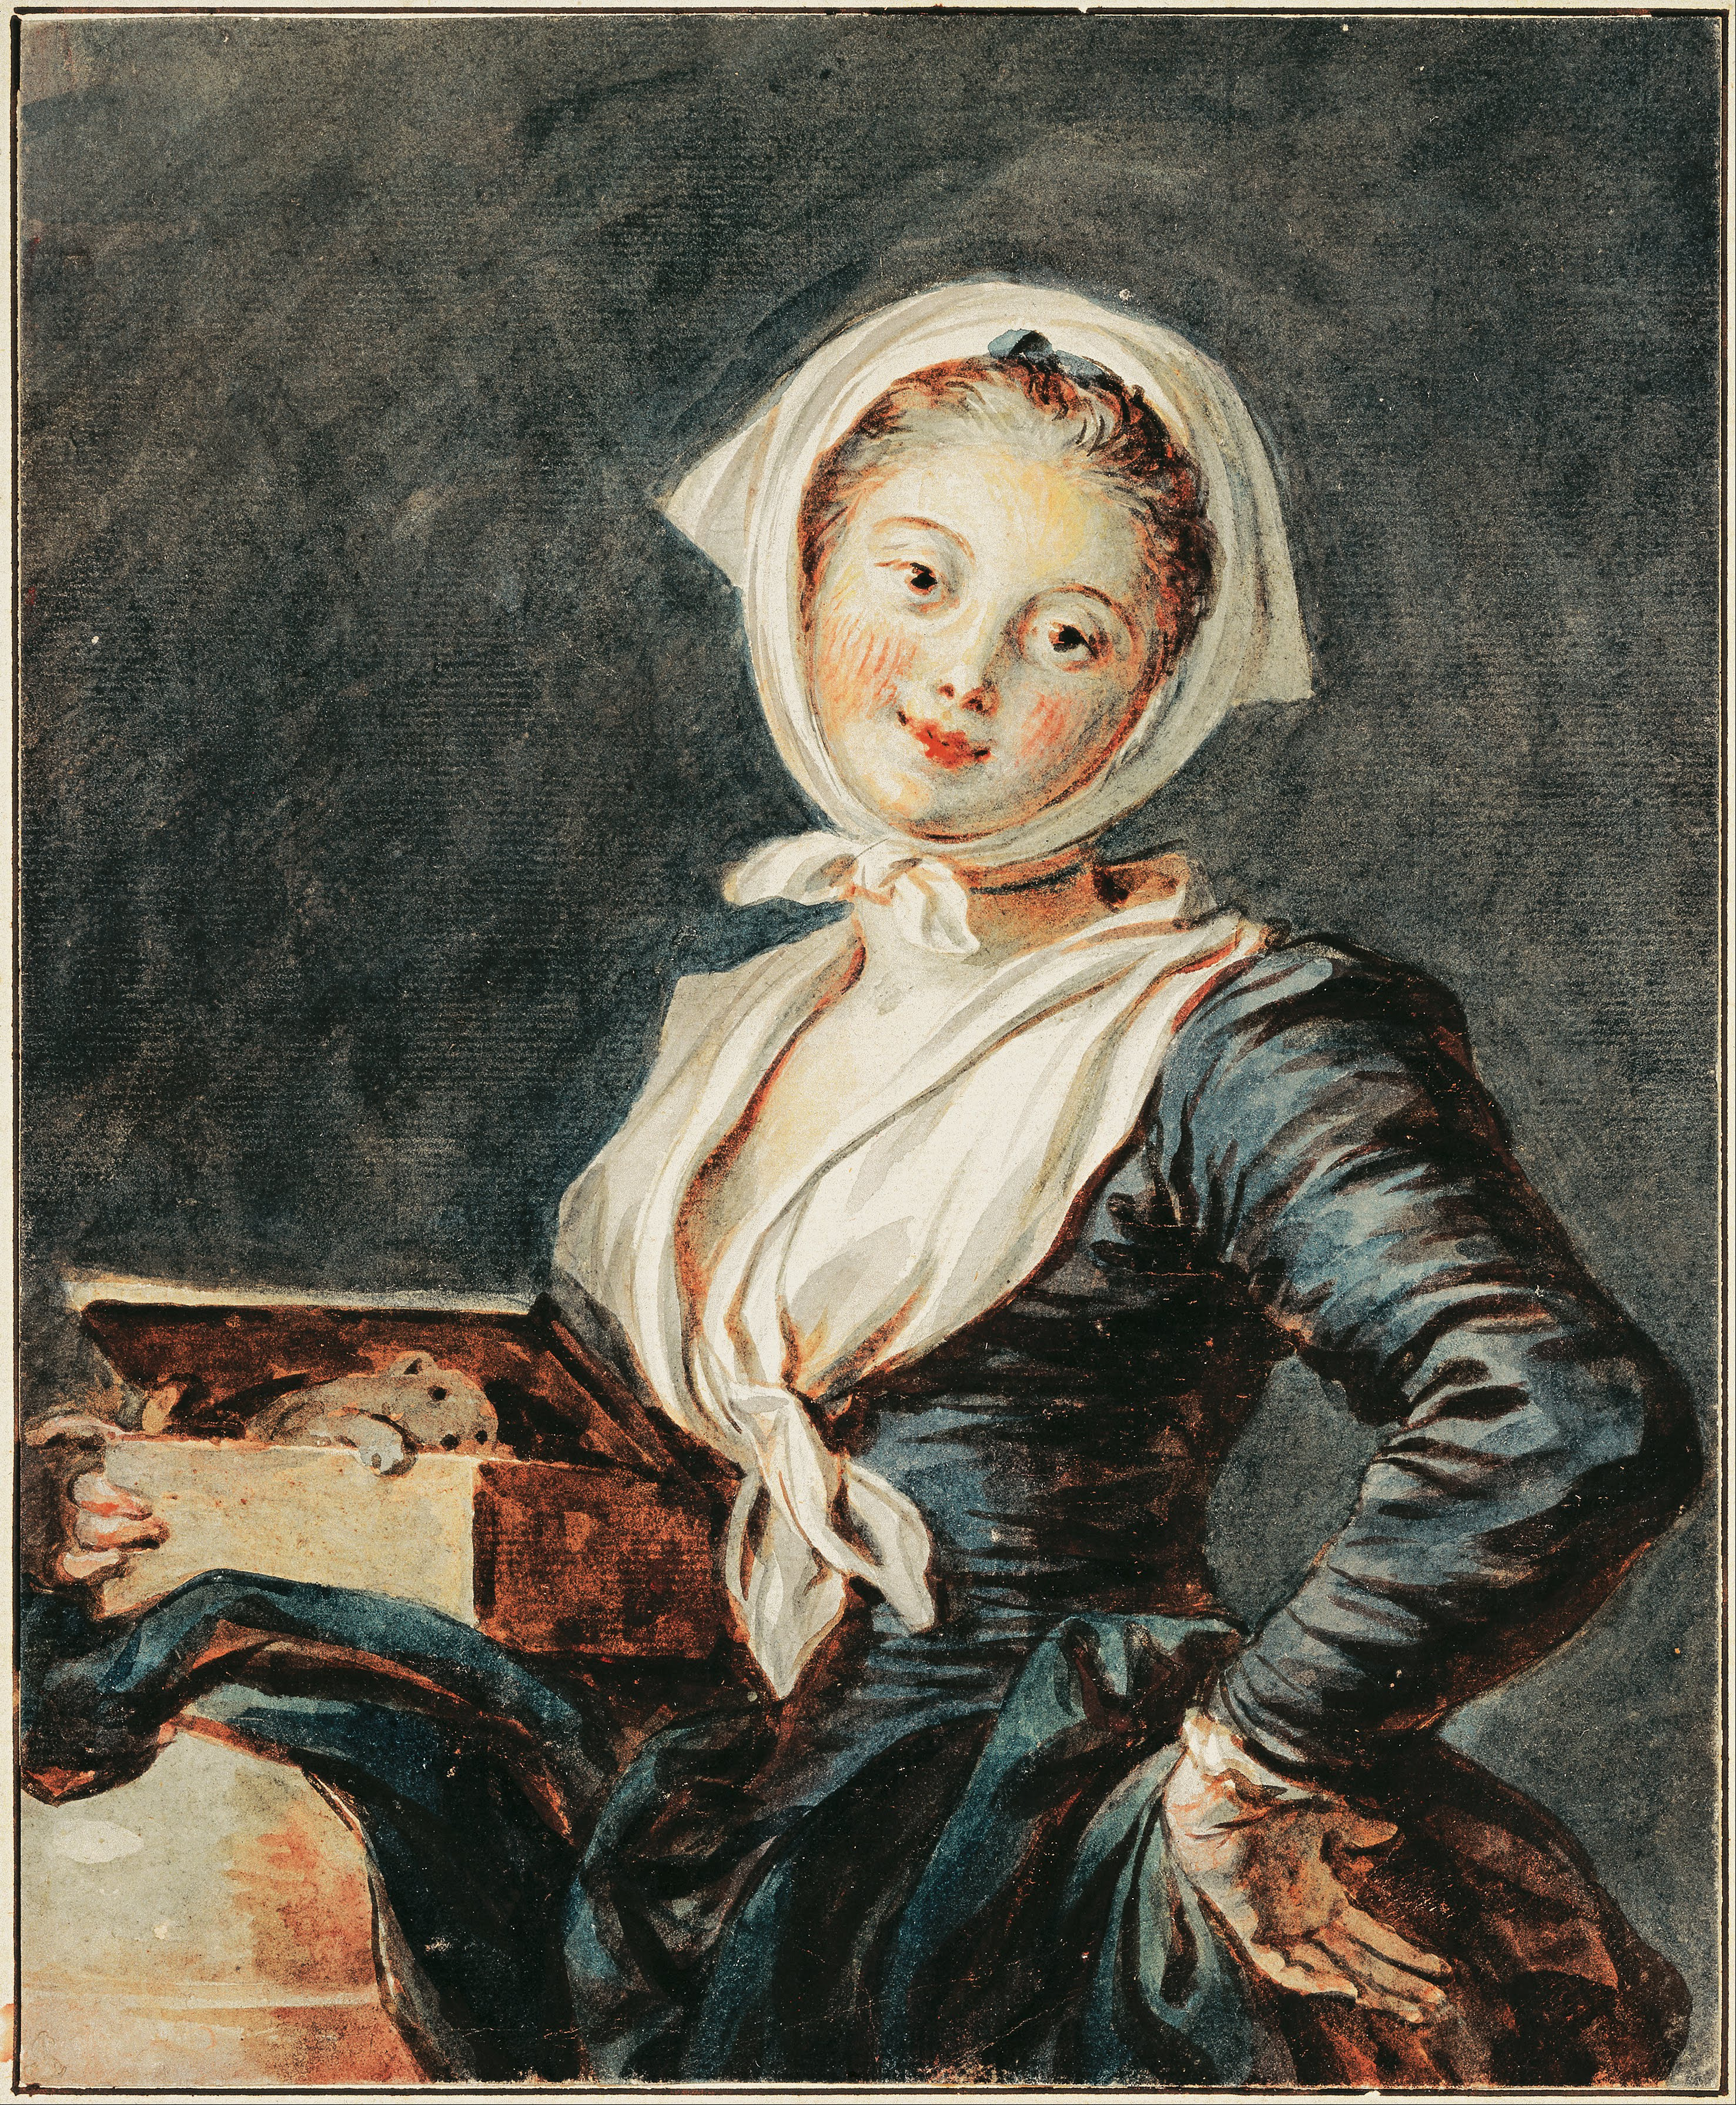 File:Jean-Honoré Fragonard - The Girl with the Marmot ...: https://commons.wikimedia.org/wiki/File:Jean-Honoré_Fragonard_-_The_Girl_with_the_Marmot_-_Google_Art_Project.jpg